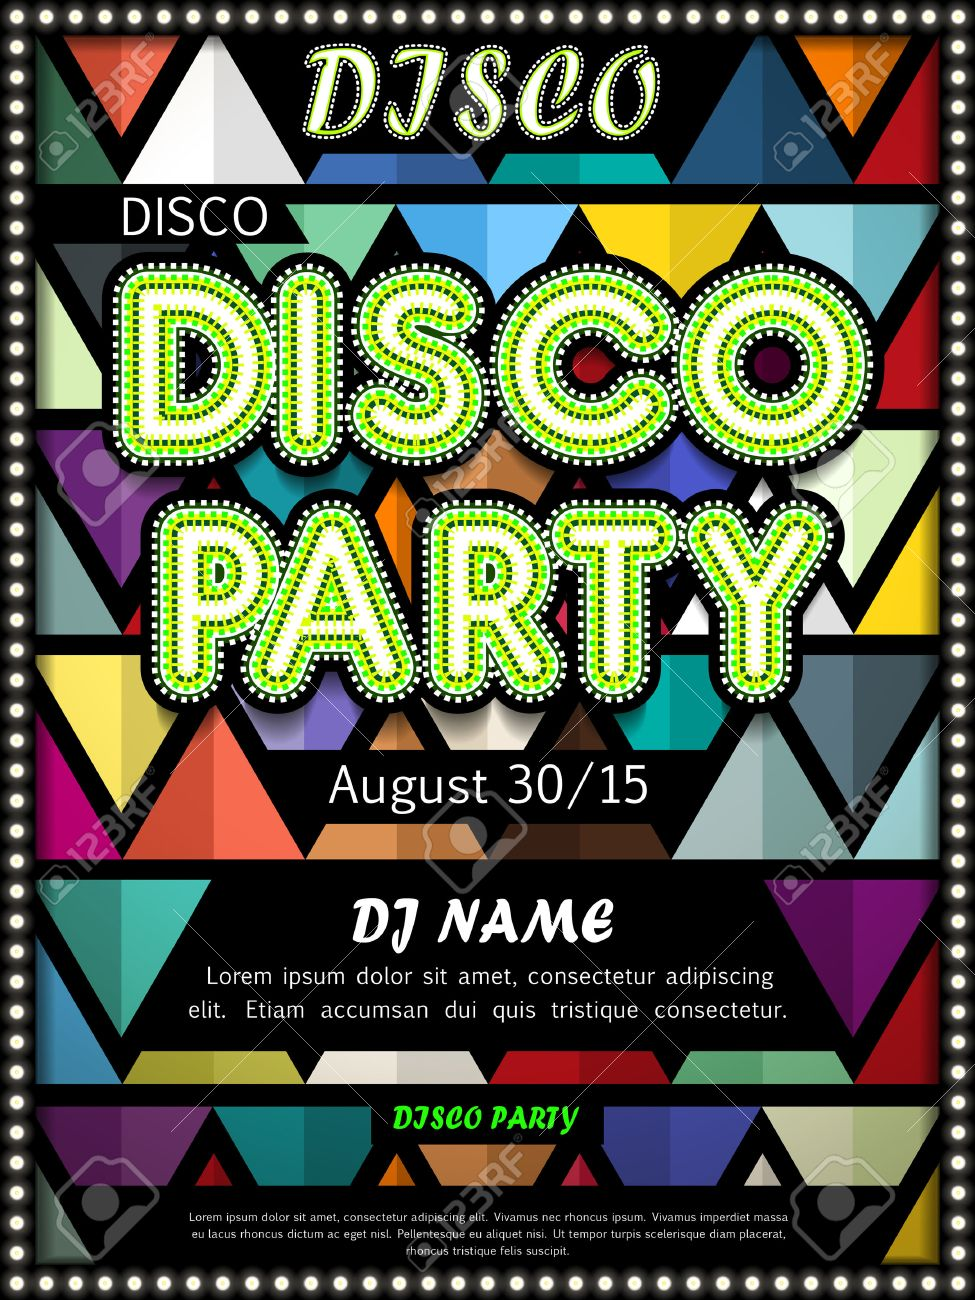 Poster design elements - Vector Modern Disco Party Poster Design With Colorful Triangle Elements